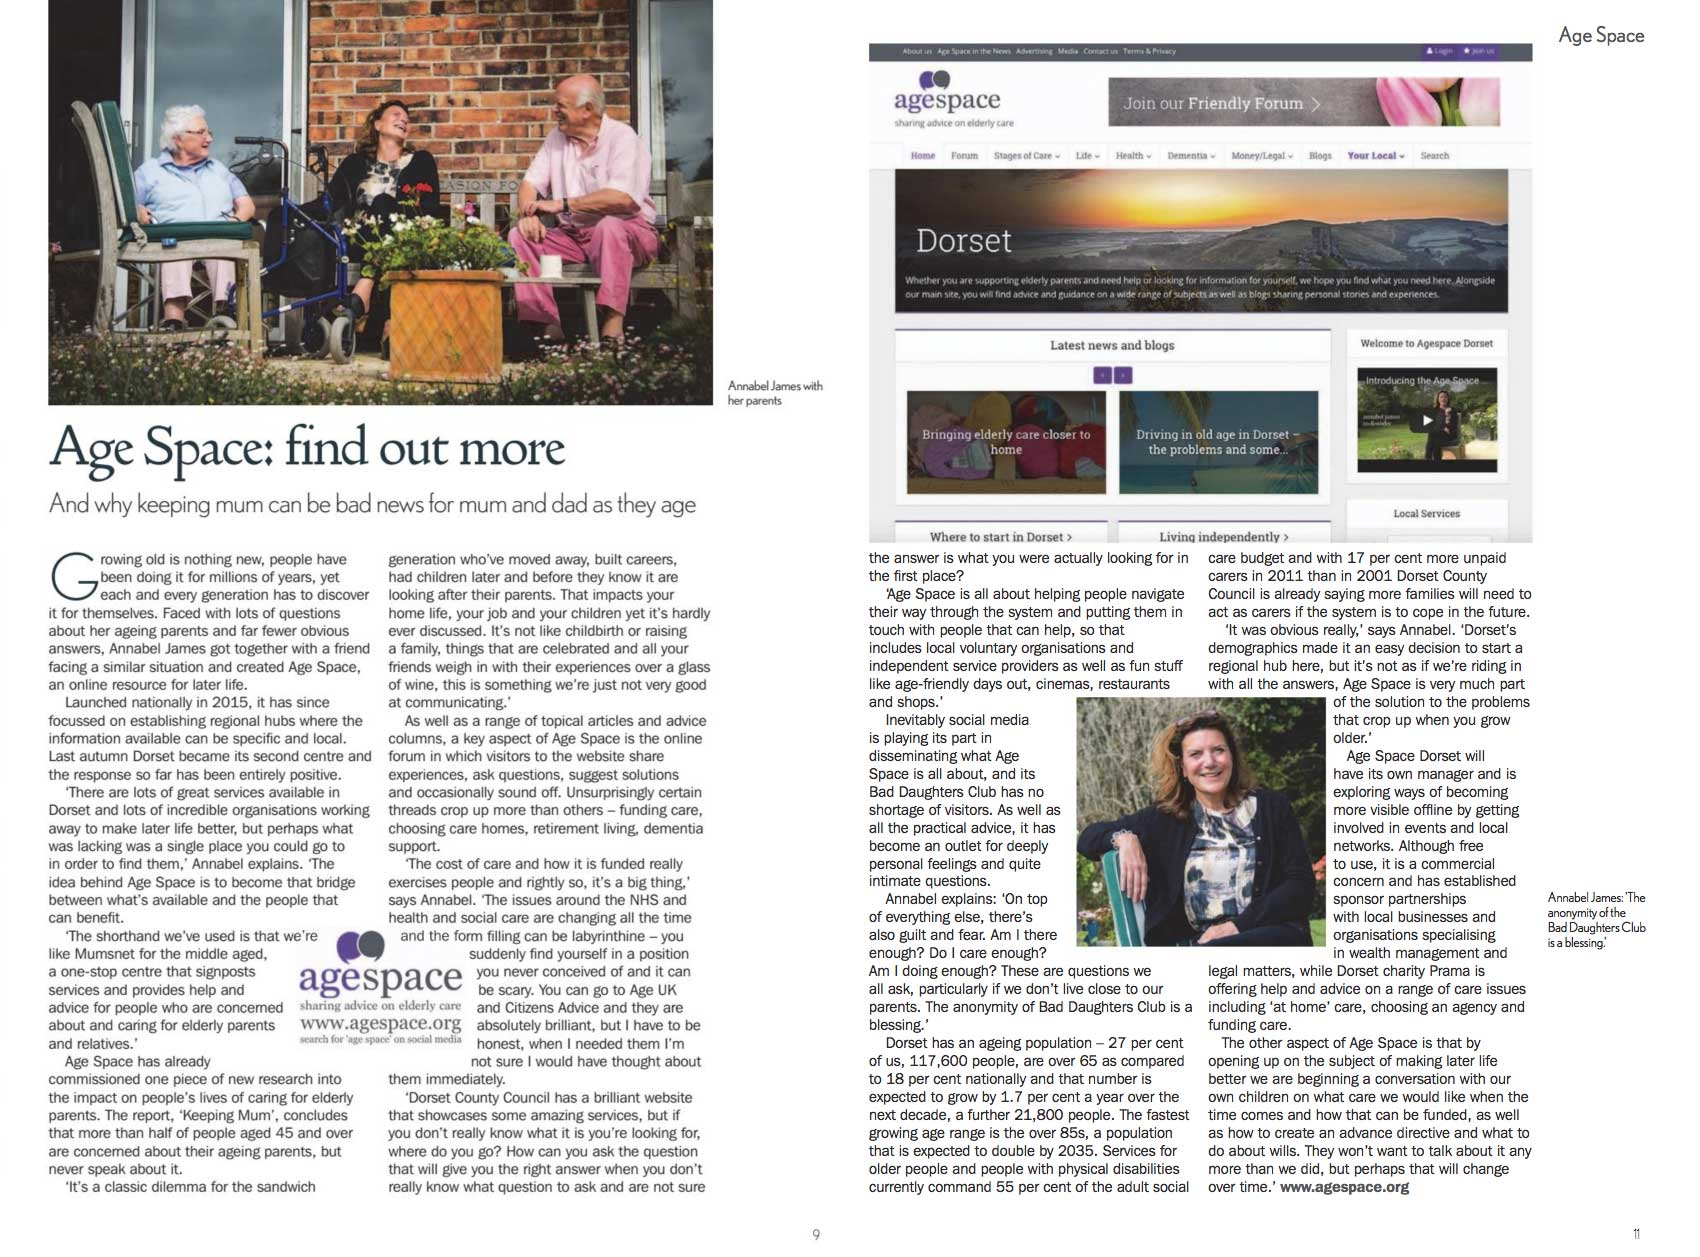 'Age Space: find out more' in Senior Living issue 18 (March 2018)